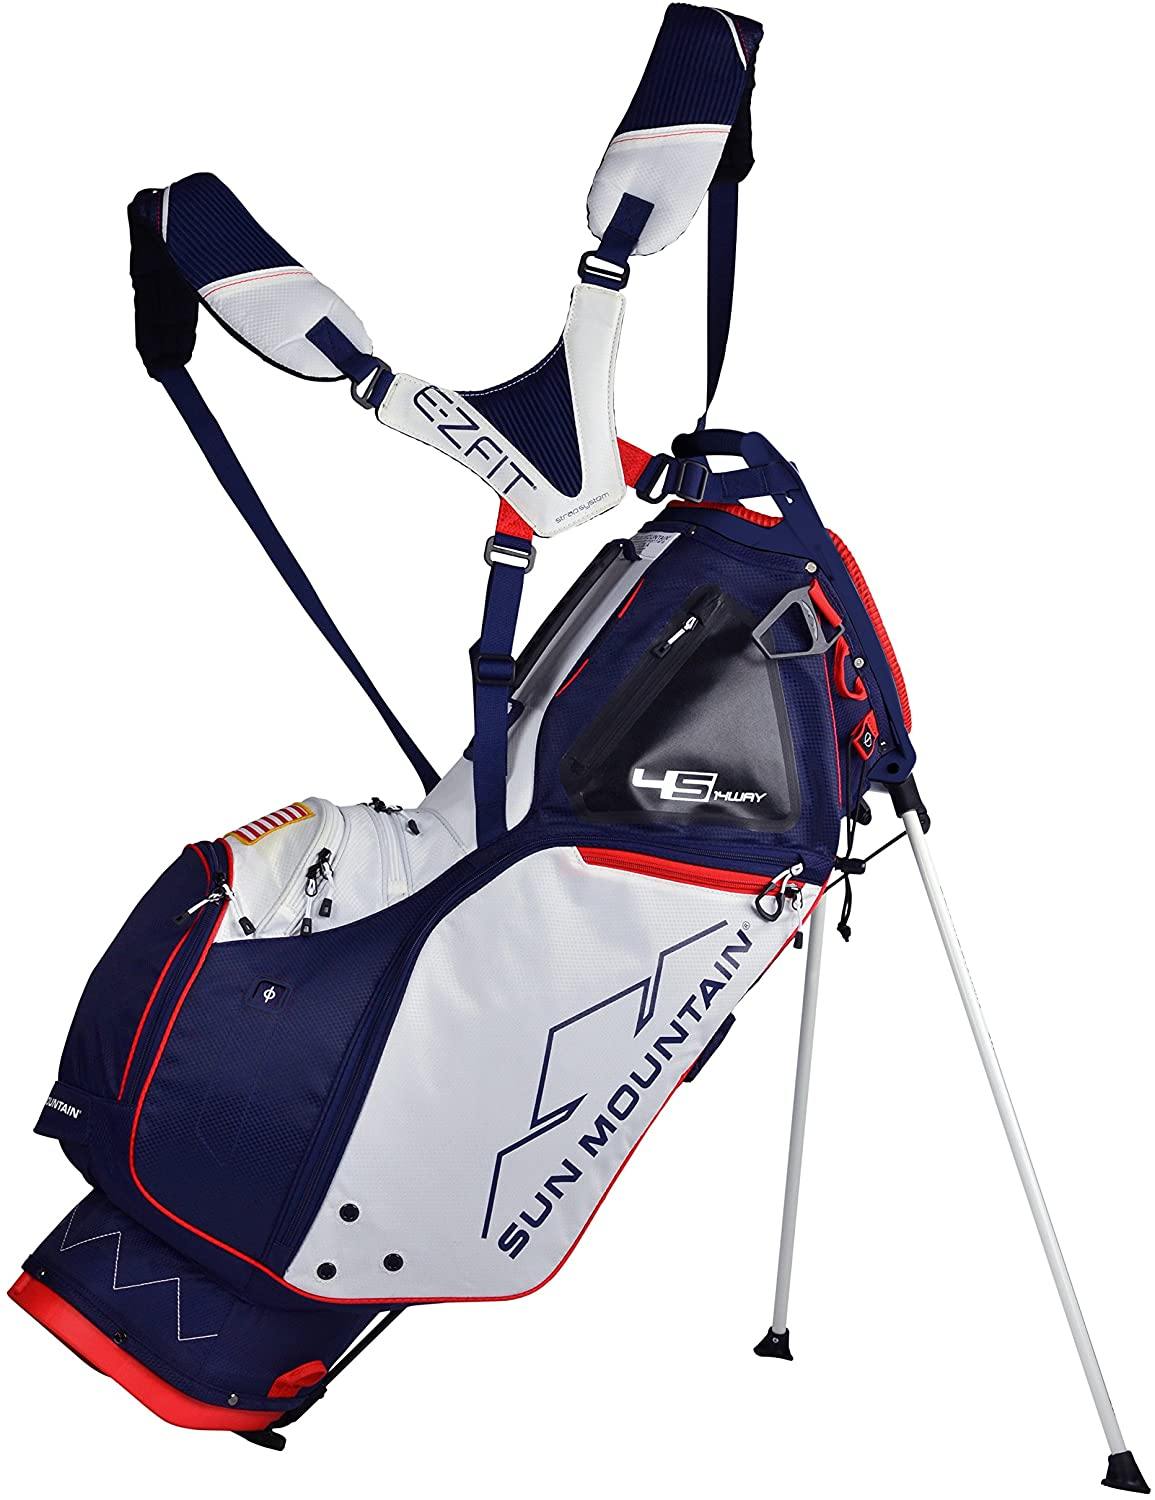 Sun Mountain Prior Generation 4.5LS 14-Way Stand Bag reviews